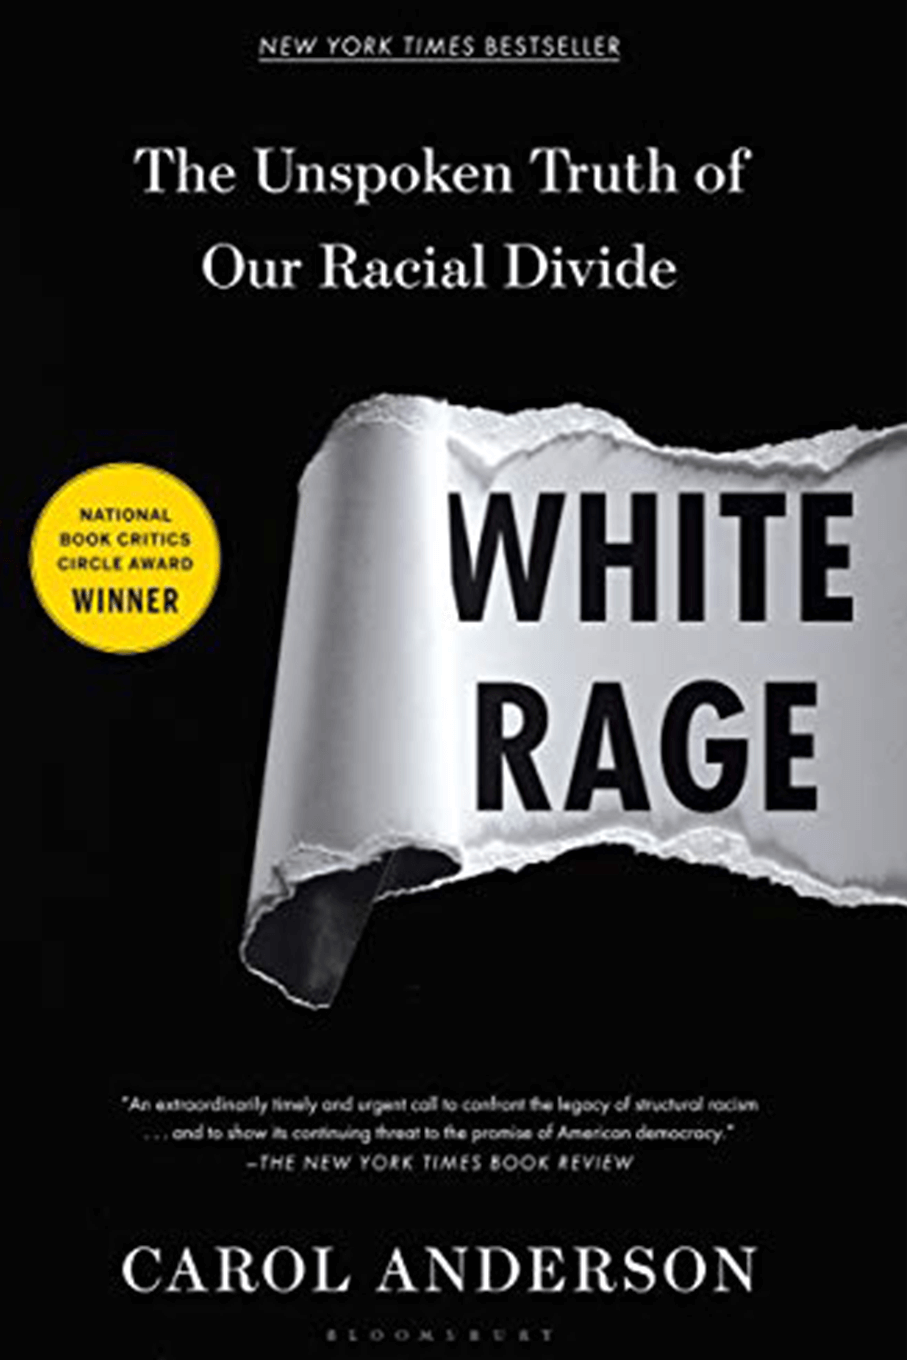 White Rage book cover, author Carol Anderson